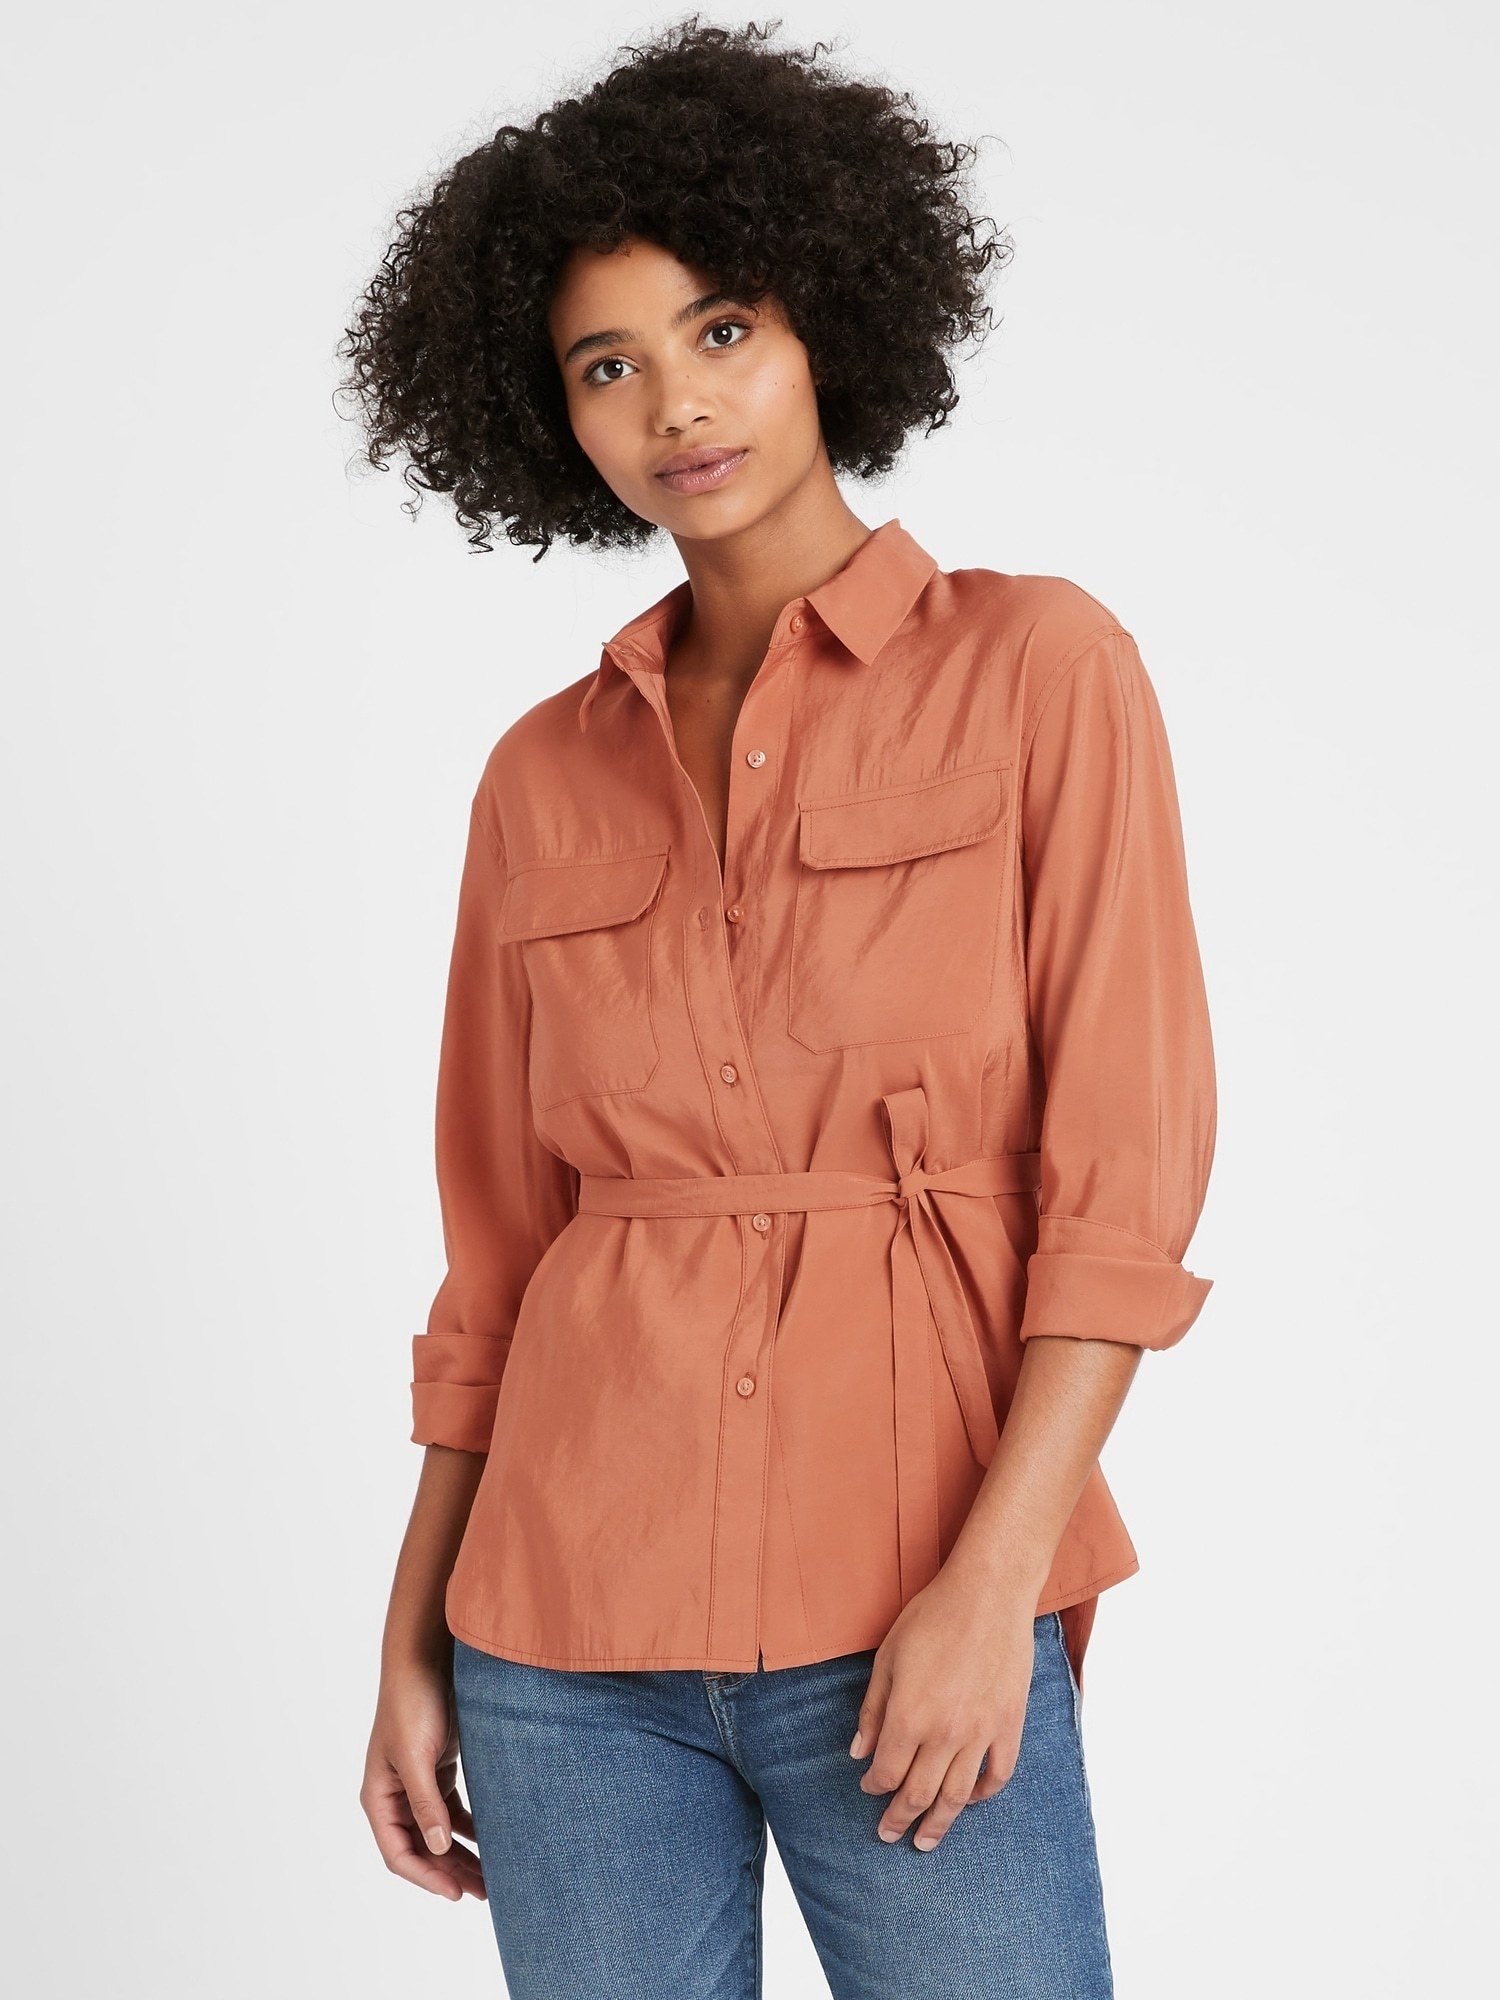 The button-down shirt with pockets on either side of the chest, rolled sleeves, and a tie around the waist